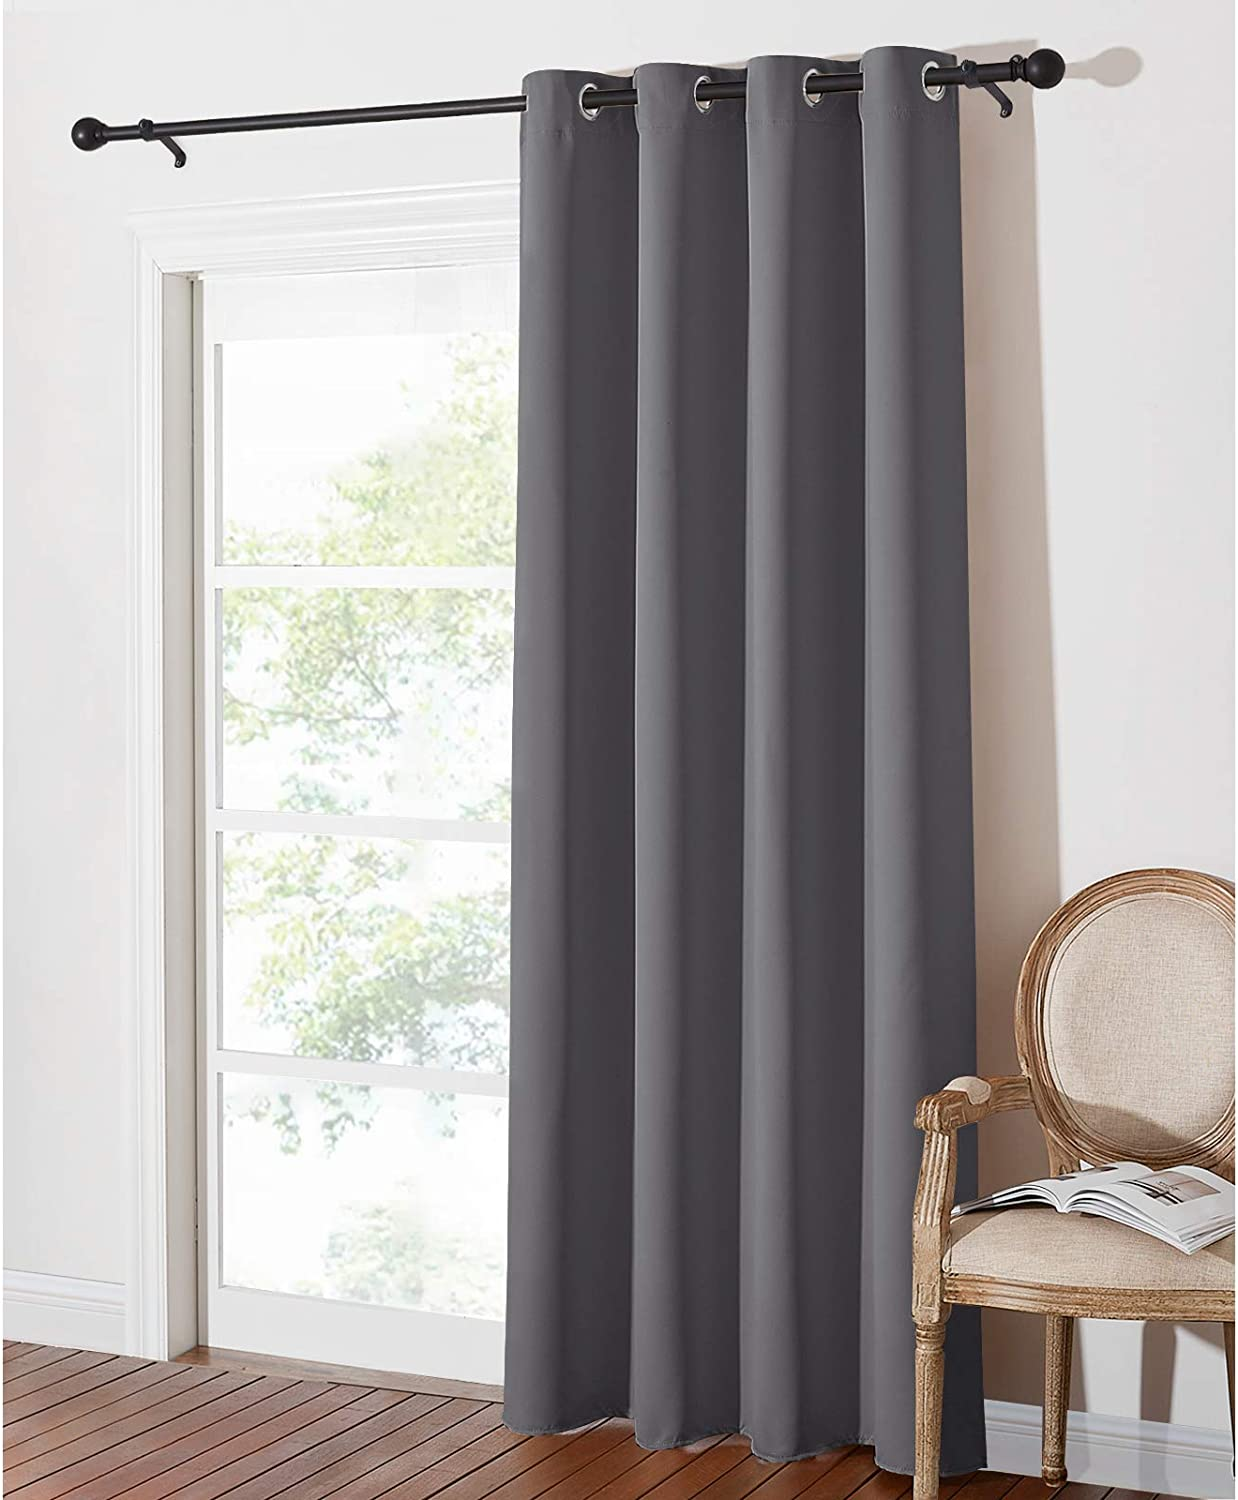 """PONY DANCE Thermal Blackout Curtain - 84-inch Long Blackout Door Curtain for Living Room Eyelet Window Treatment for Home Fashion & Decoration, 1 Panel, W 52-inch by D 84-inch, Grey 1 Panel- W 52"""" x L 84"""" Grey"""